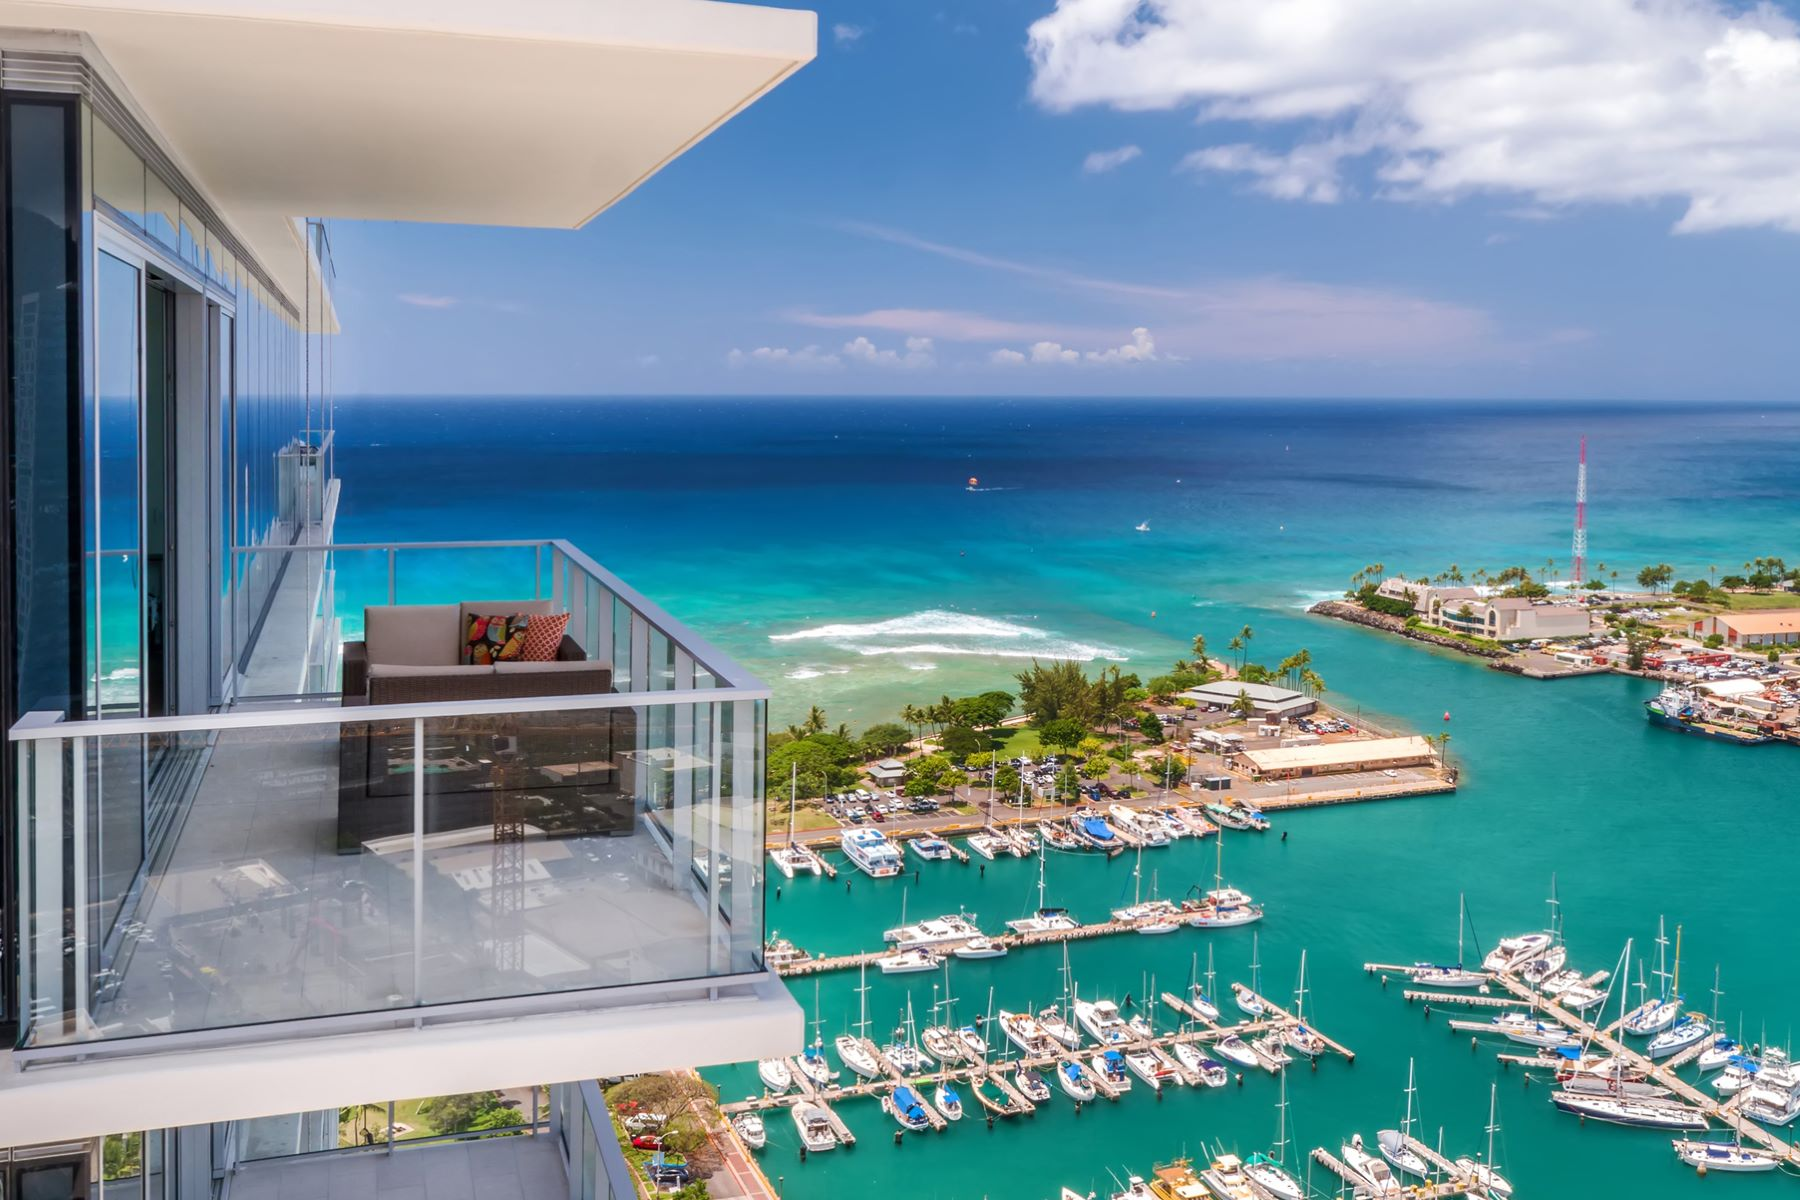 Condominium for Sale at Stunning Waiea Penthouse 1118 Ala Moana Boulevard #PH 3203 Honolulu, Hawaii 96814 United States